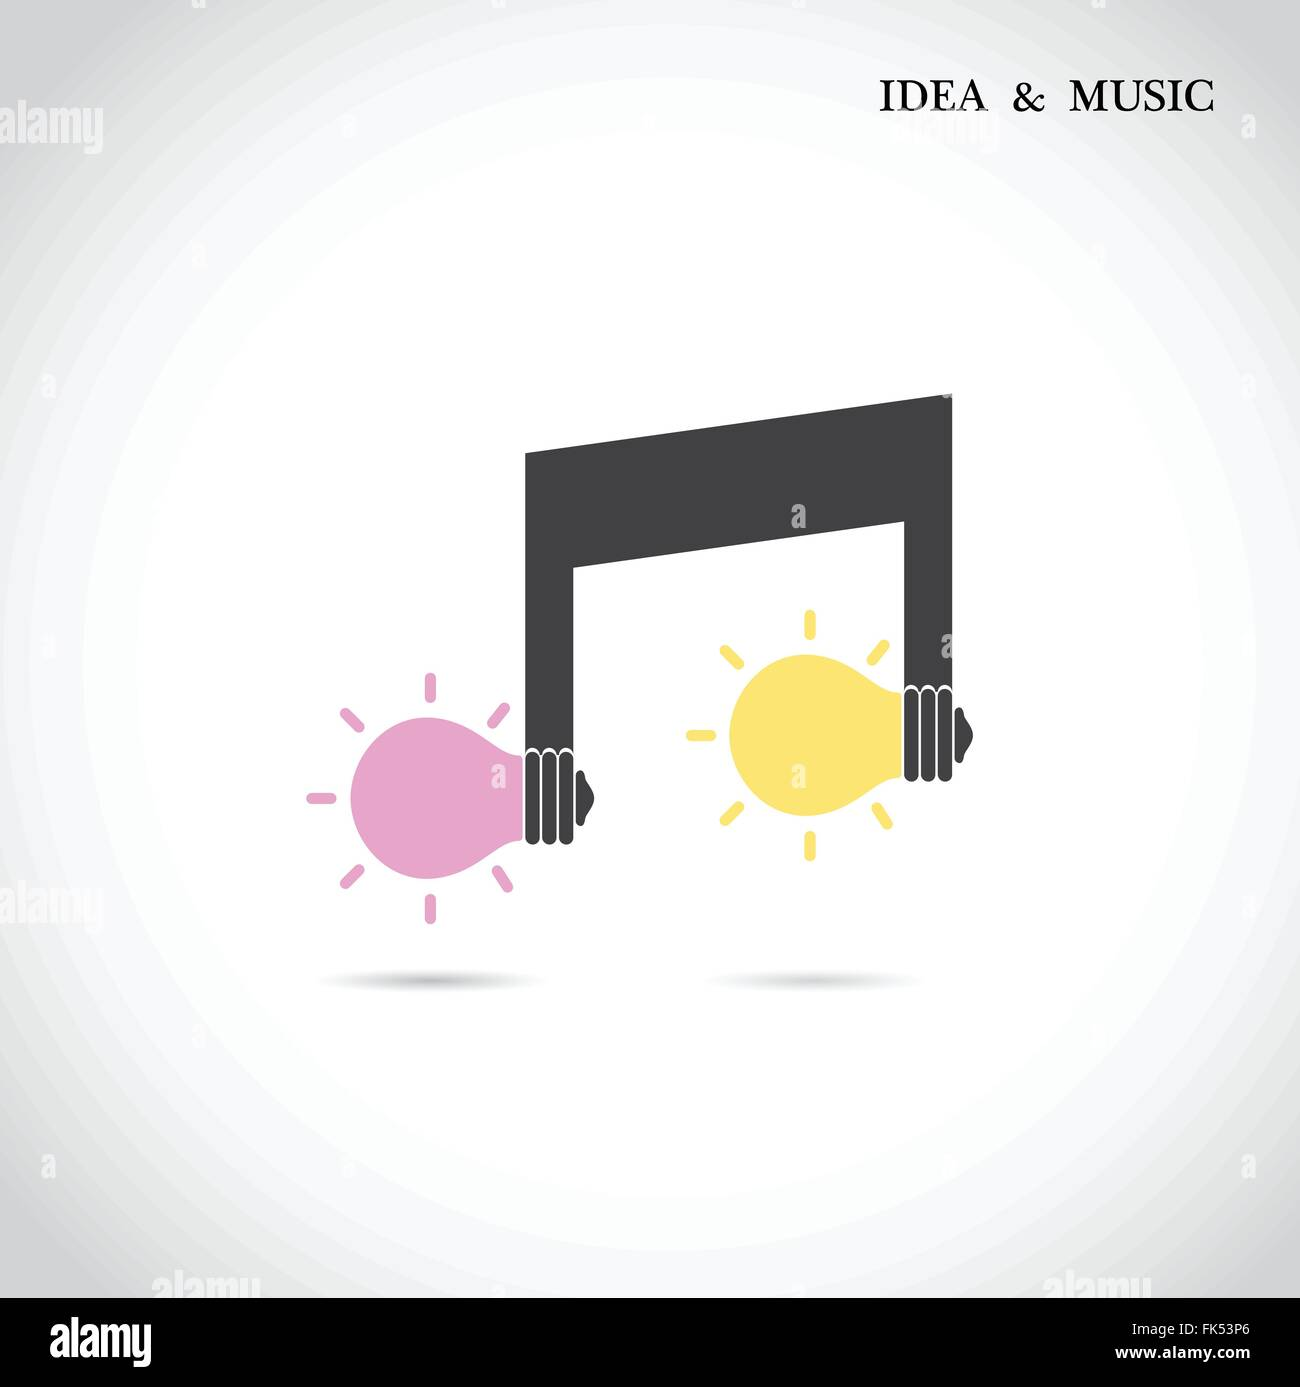 Creative music note sign and light bulb symbol idea and musical creative music note sign and light bulb symbol idea and musical symbol vector illustration biocorpaavc Gallery